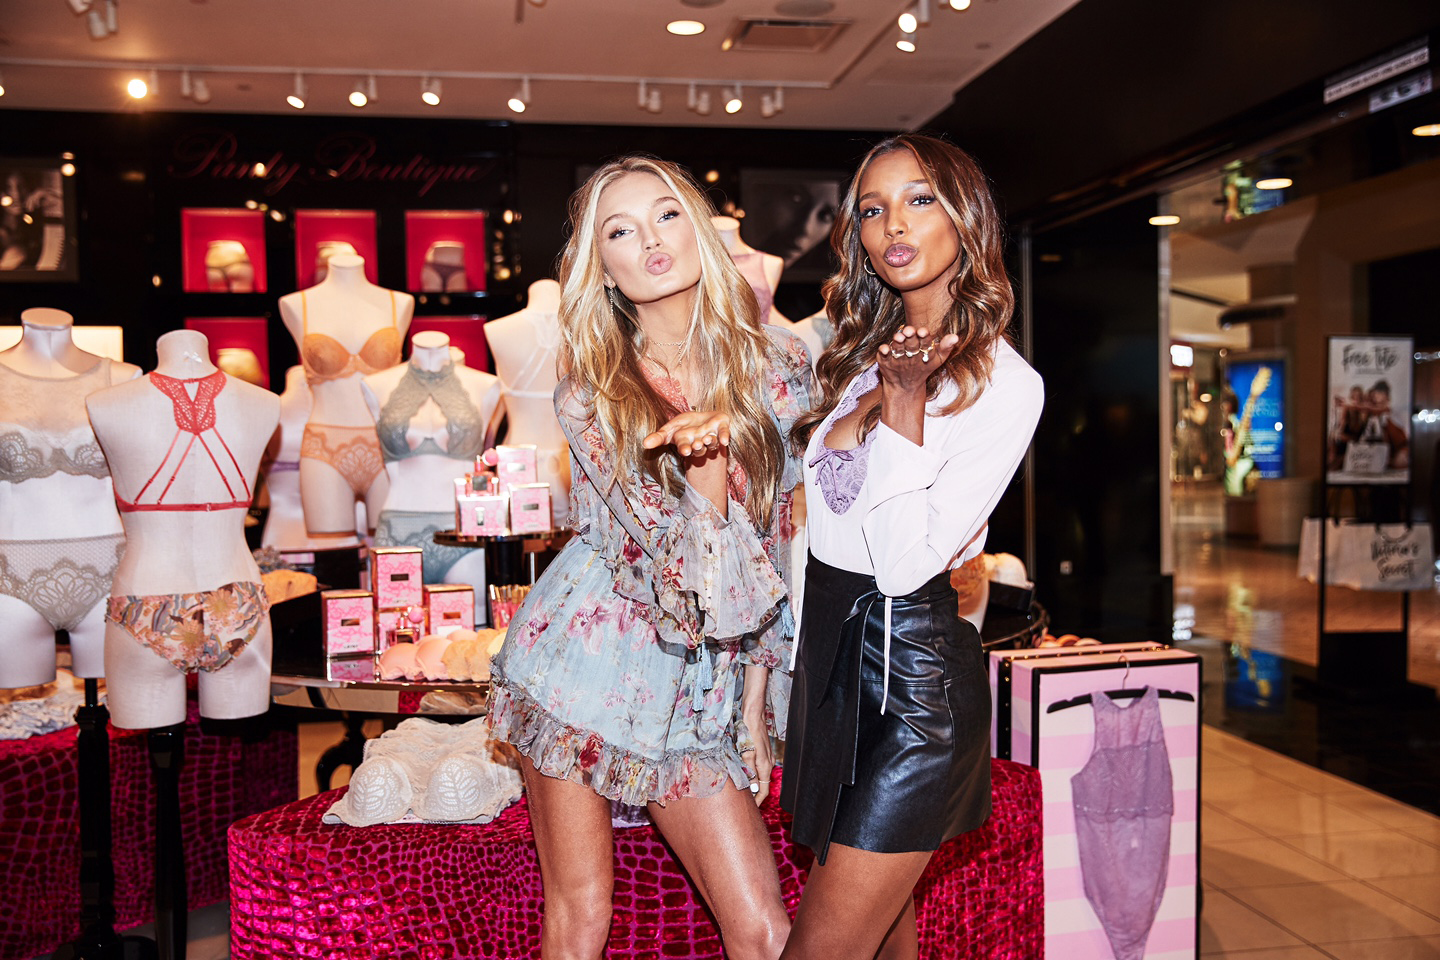 romee strijd and jasmine tookes